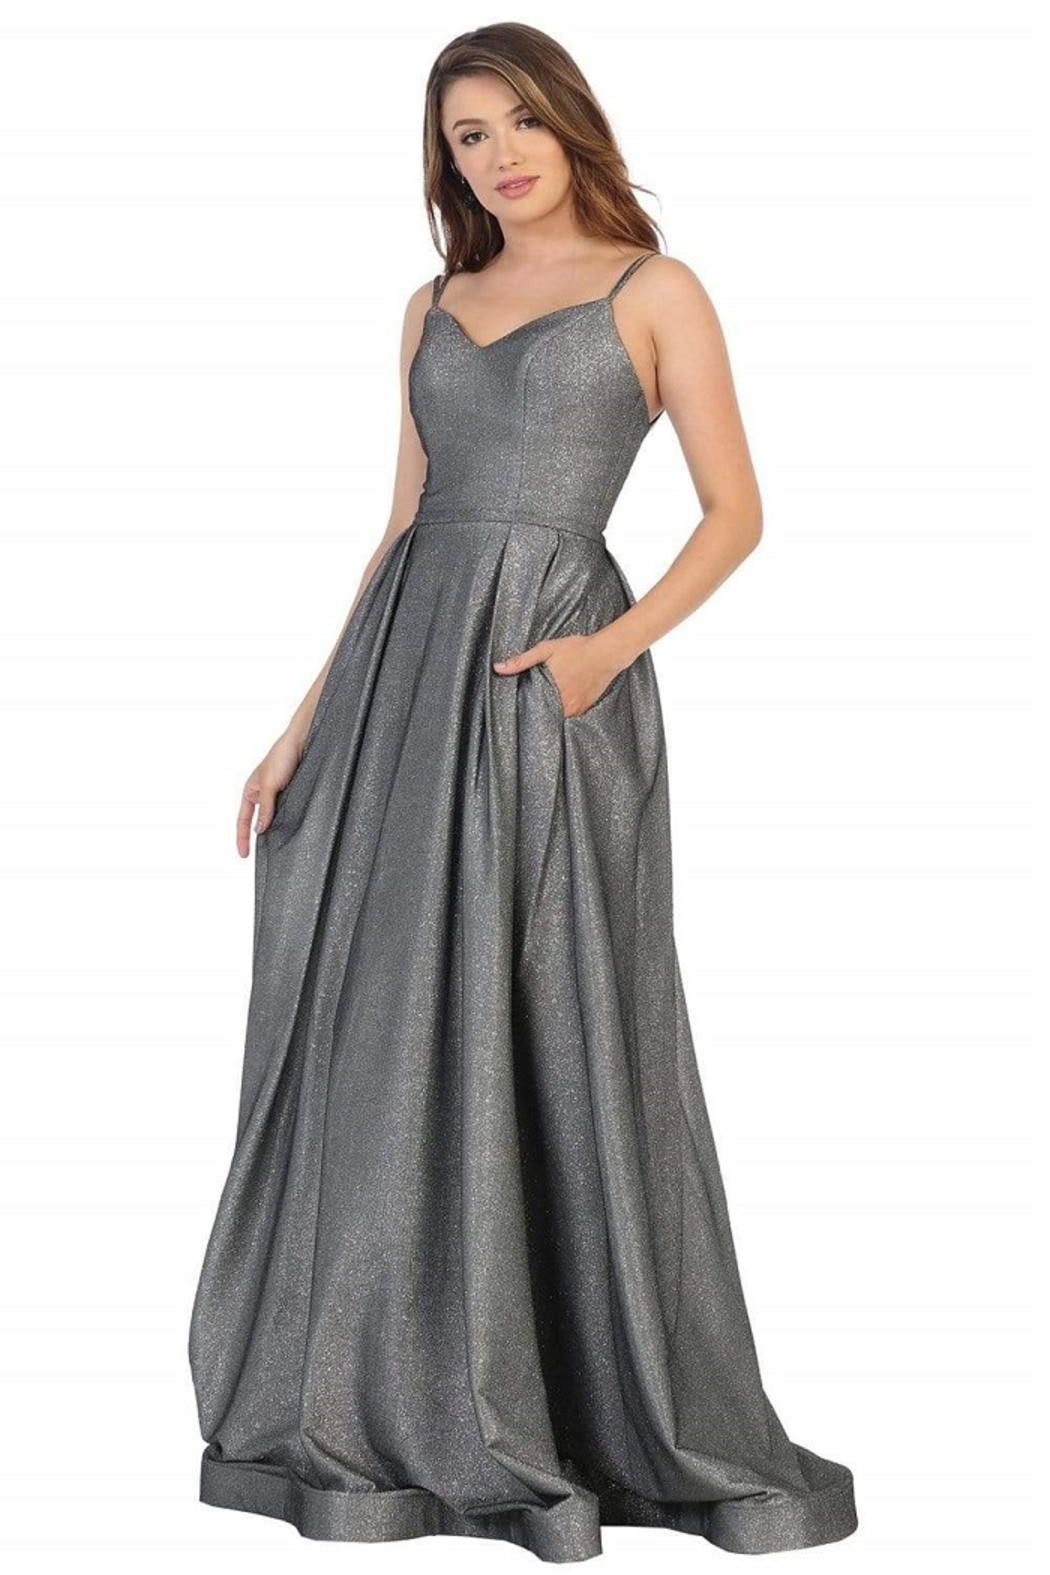 May Queen  Charcoal Glitter A-Line Formal Long Dress - Main Image